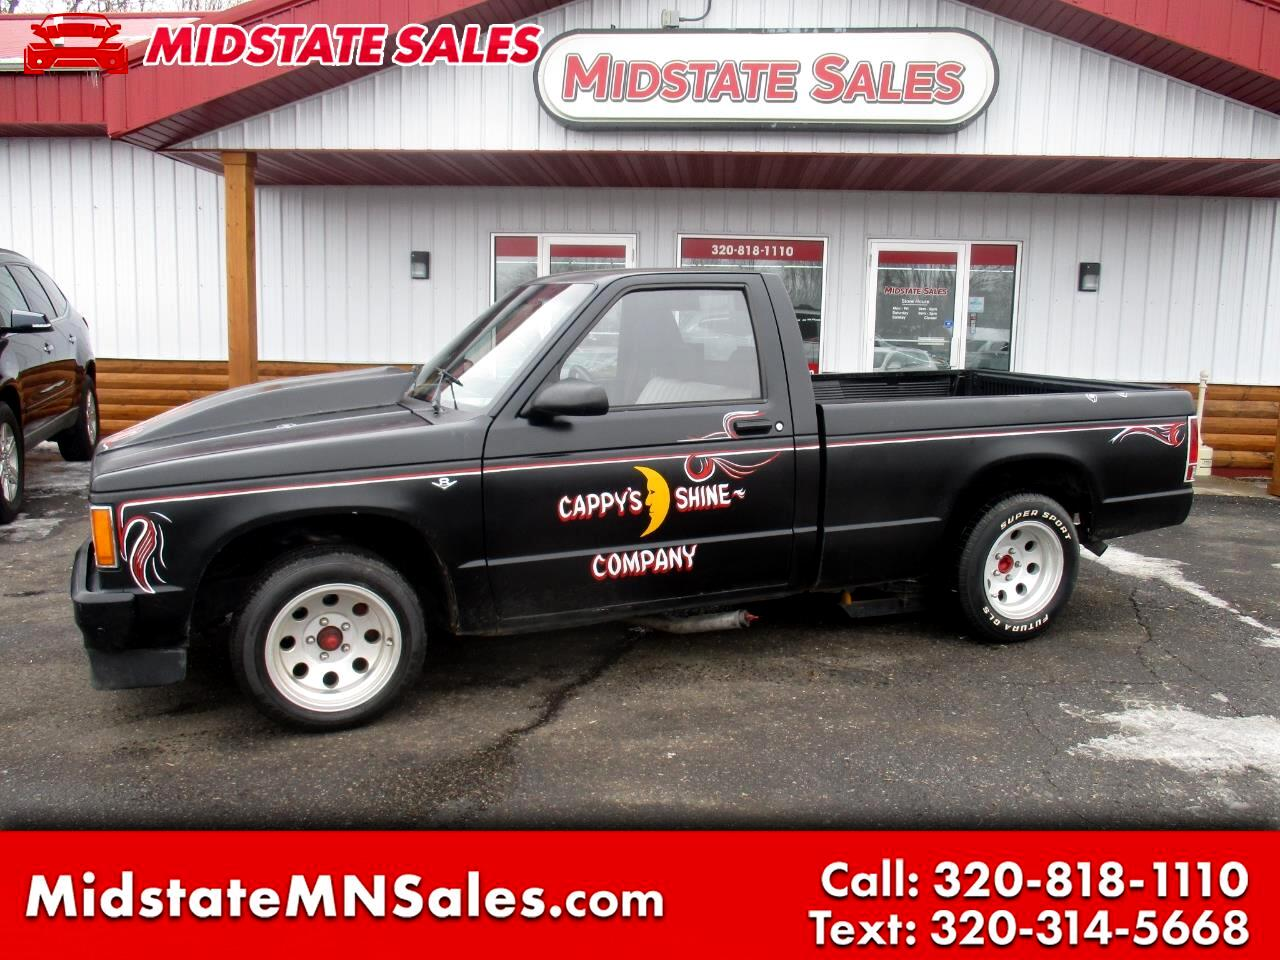 1984 Chevrolet S-10 Fleetside 6'